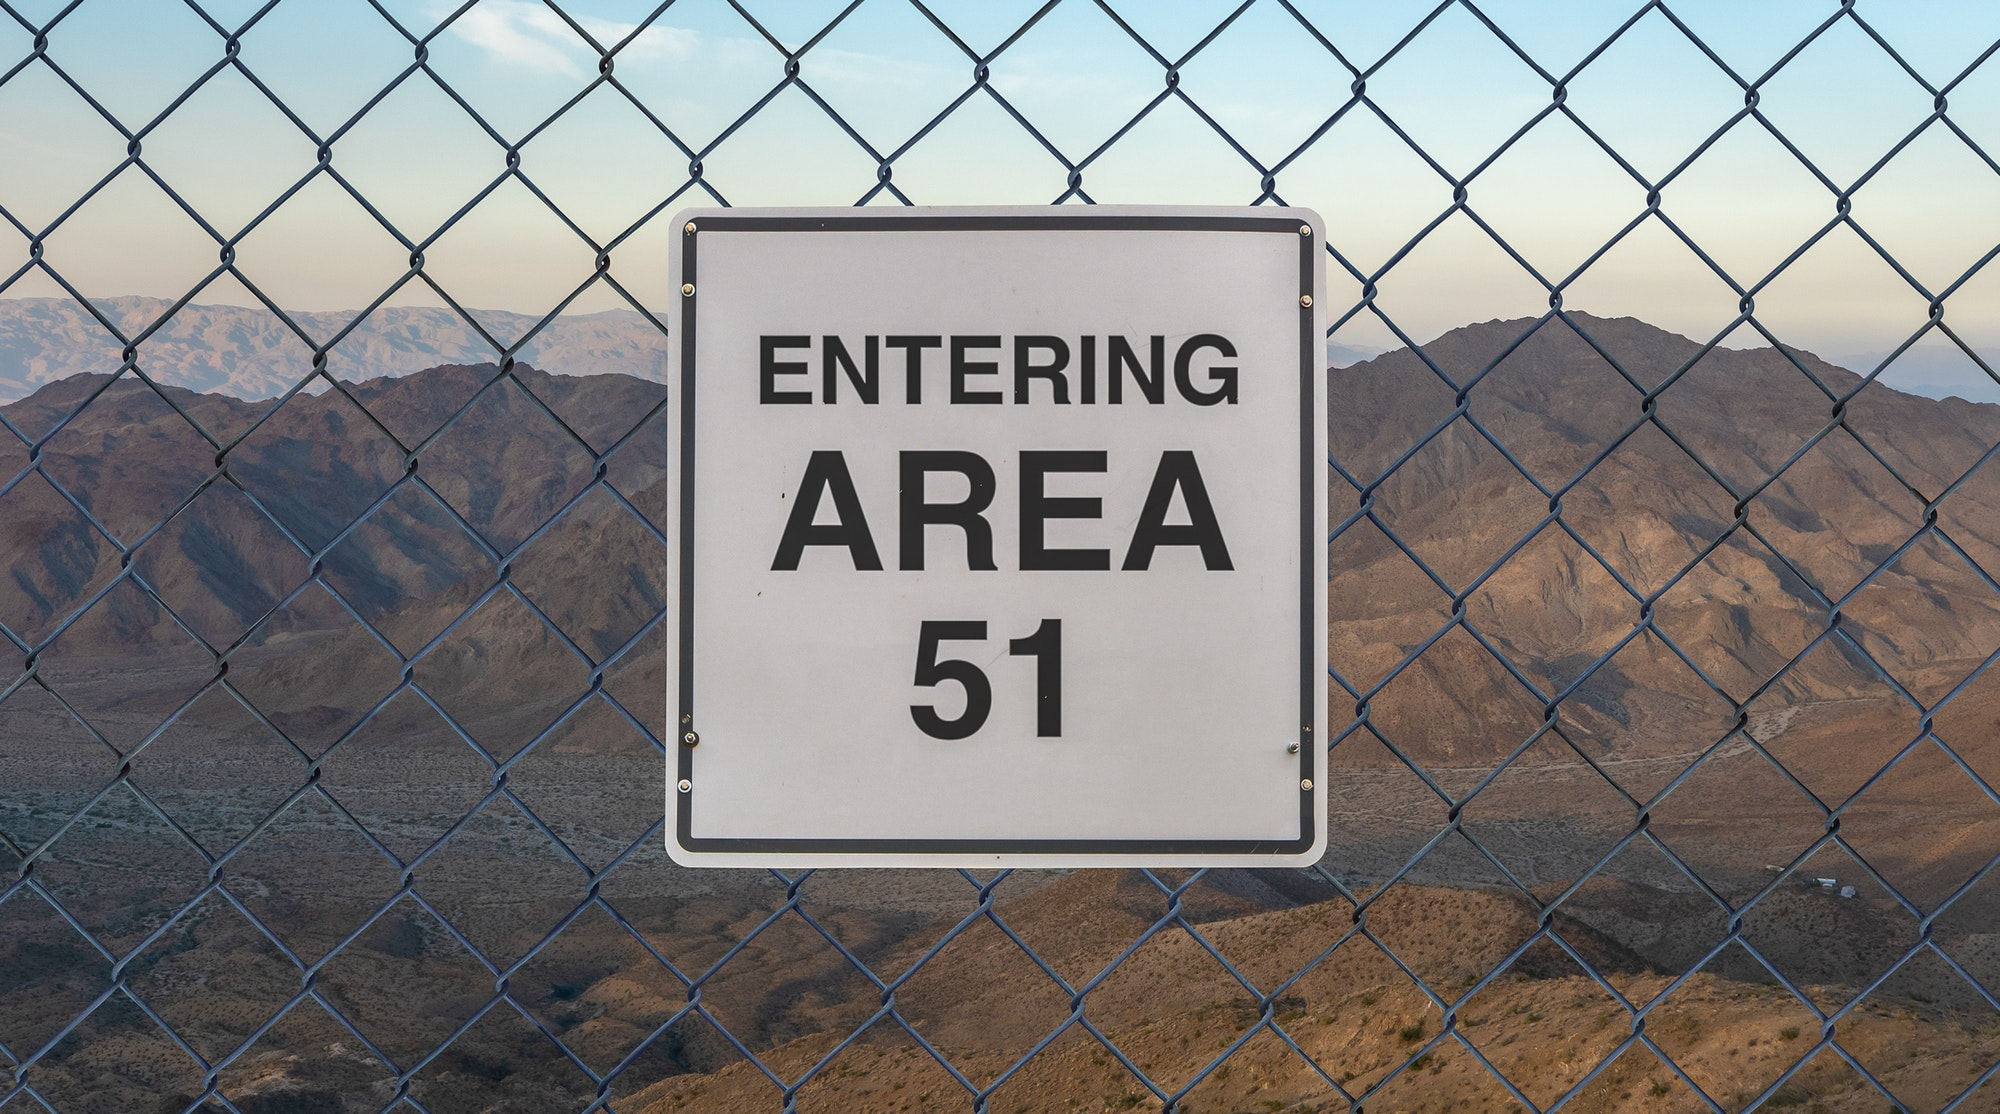 Entering Area 51 Sign